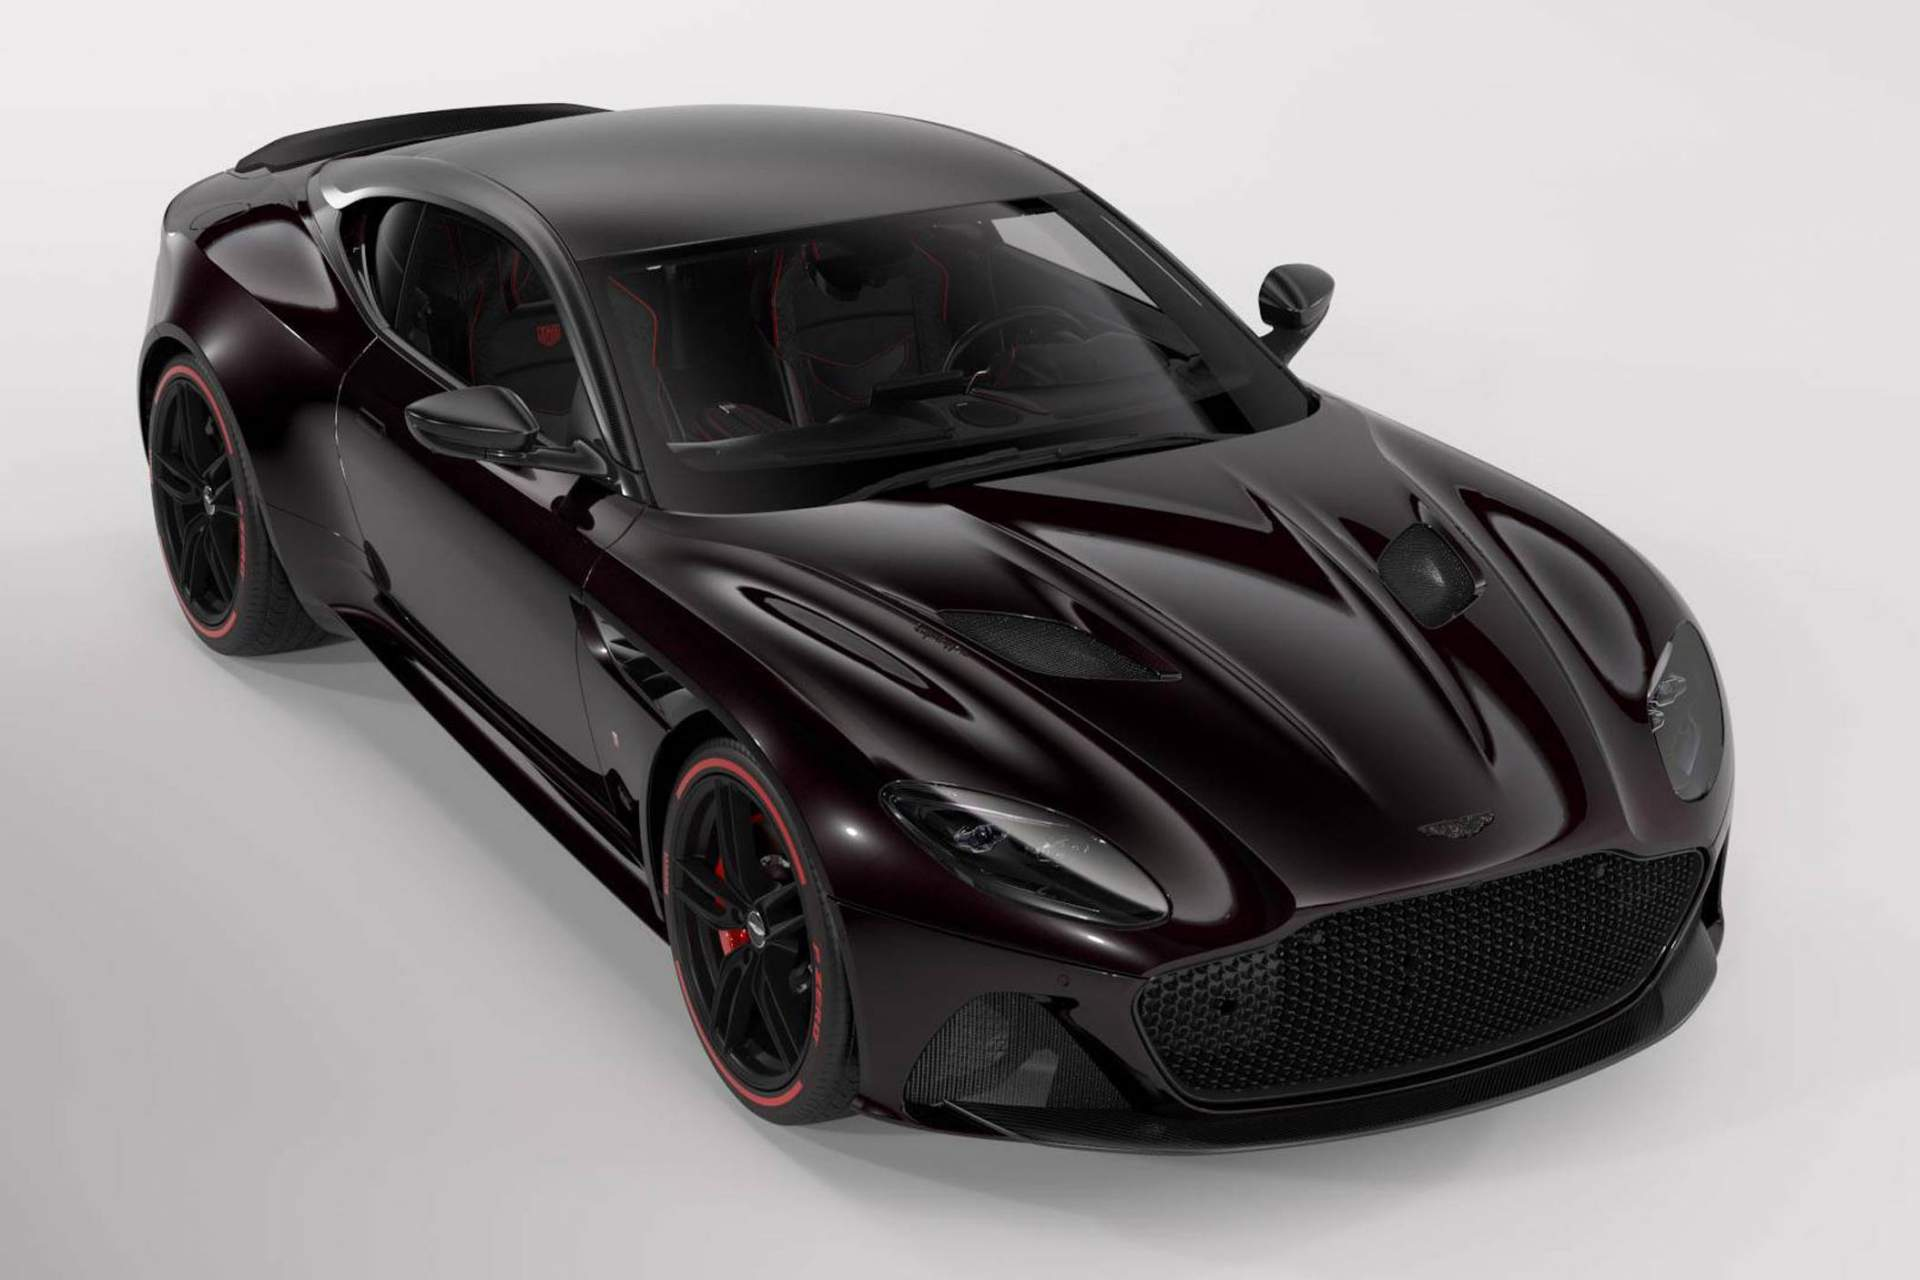 Murdered Out Aston Martin Dbs Superleggera Tag Heuer Edition Revealed